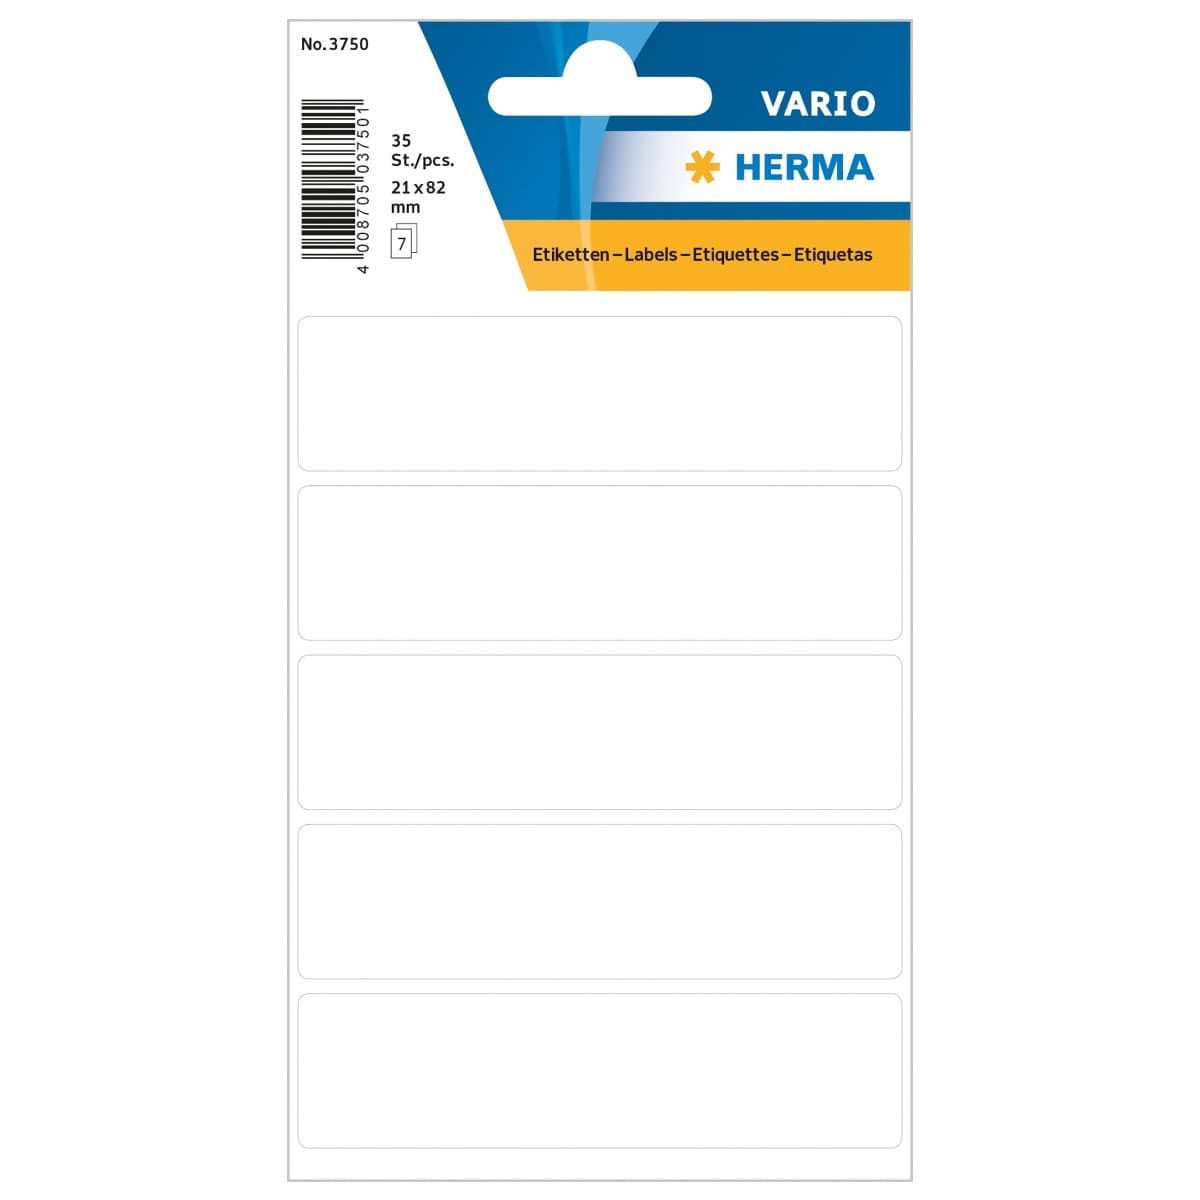 Herma Vario Sticker Labels, 21 x 82 mm, 35/pack, White